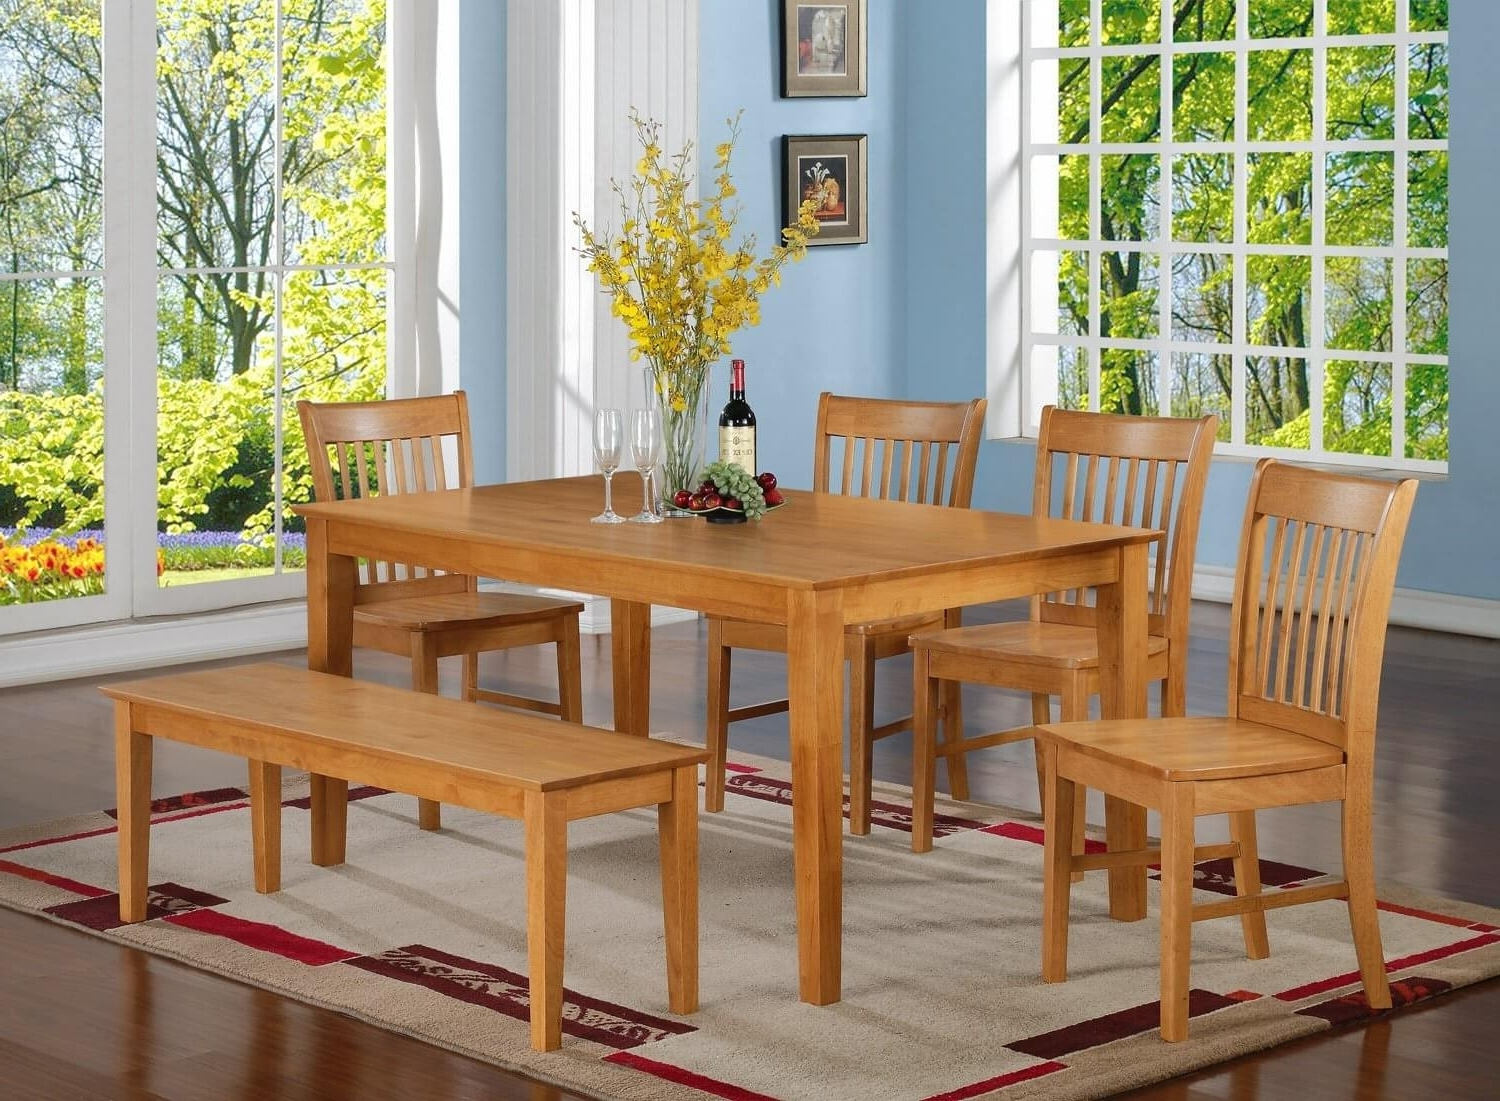 Oak Dining Tables Sets Intended For Fashionable 26 Dining Room Sets (Big And Small) With Bench Seating (2018) (View 16 of 25)